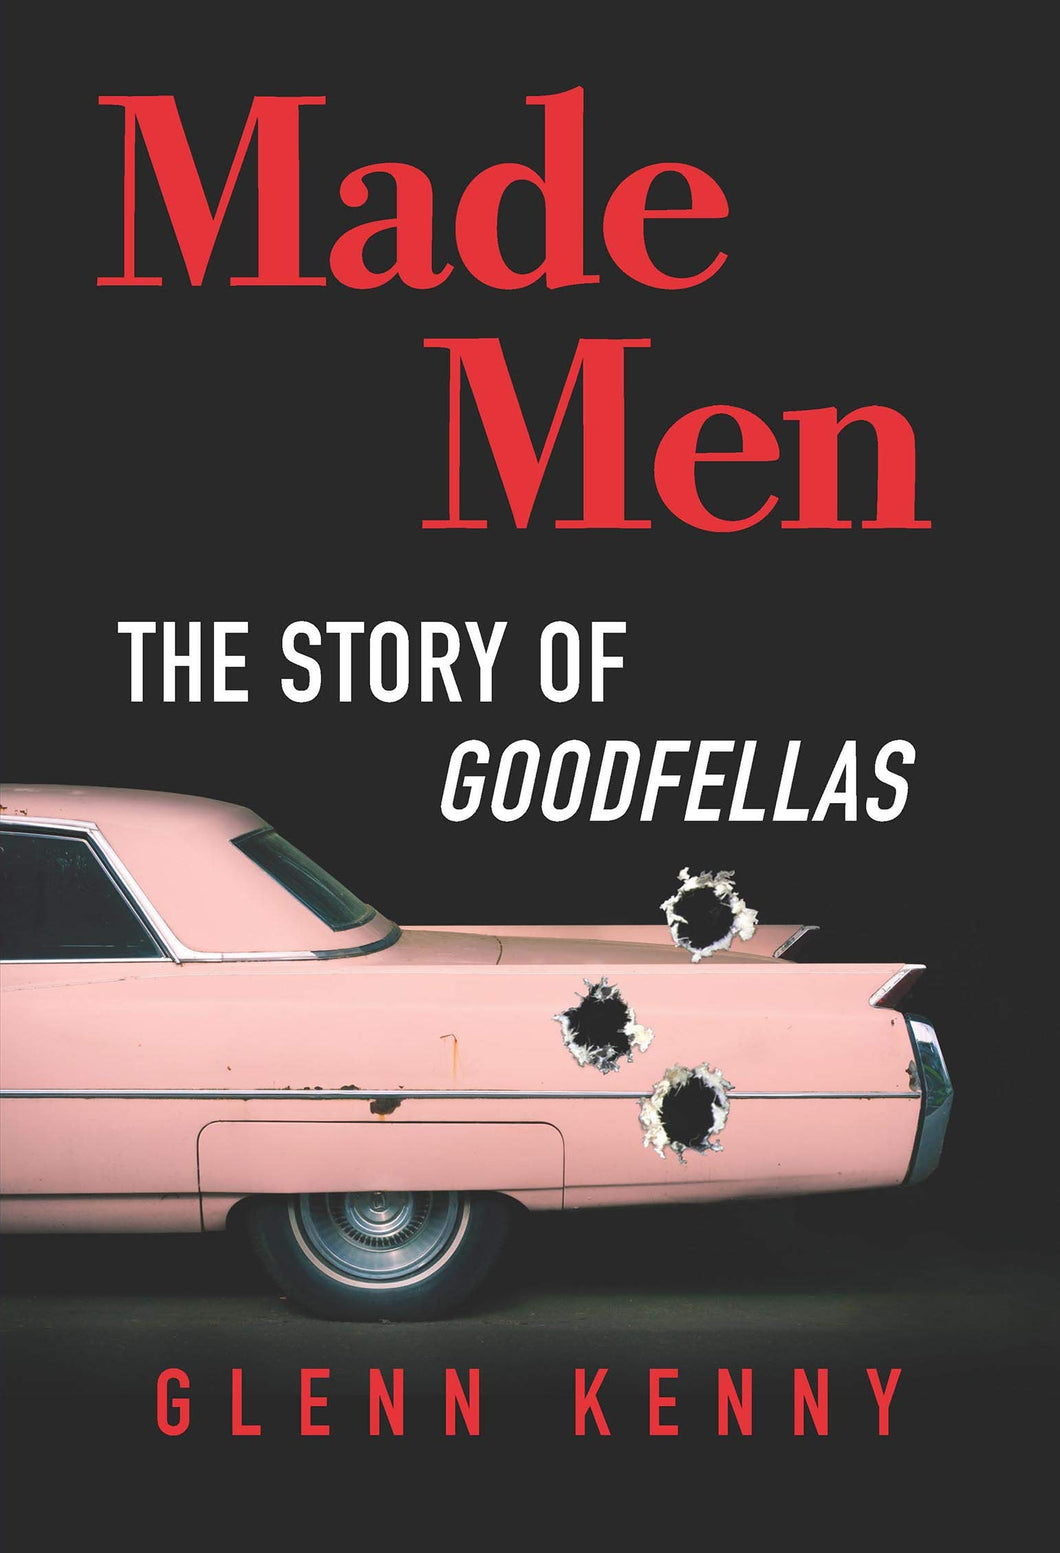 Made Men: The Story of Goodfellas (Hardcover, SIGNED)